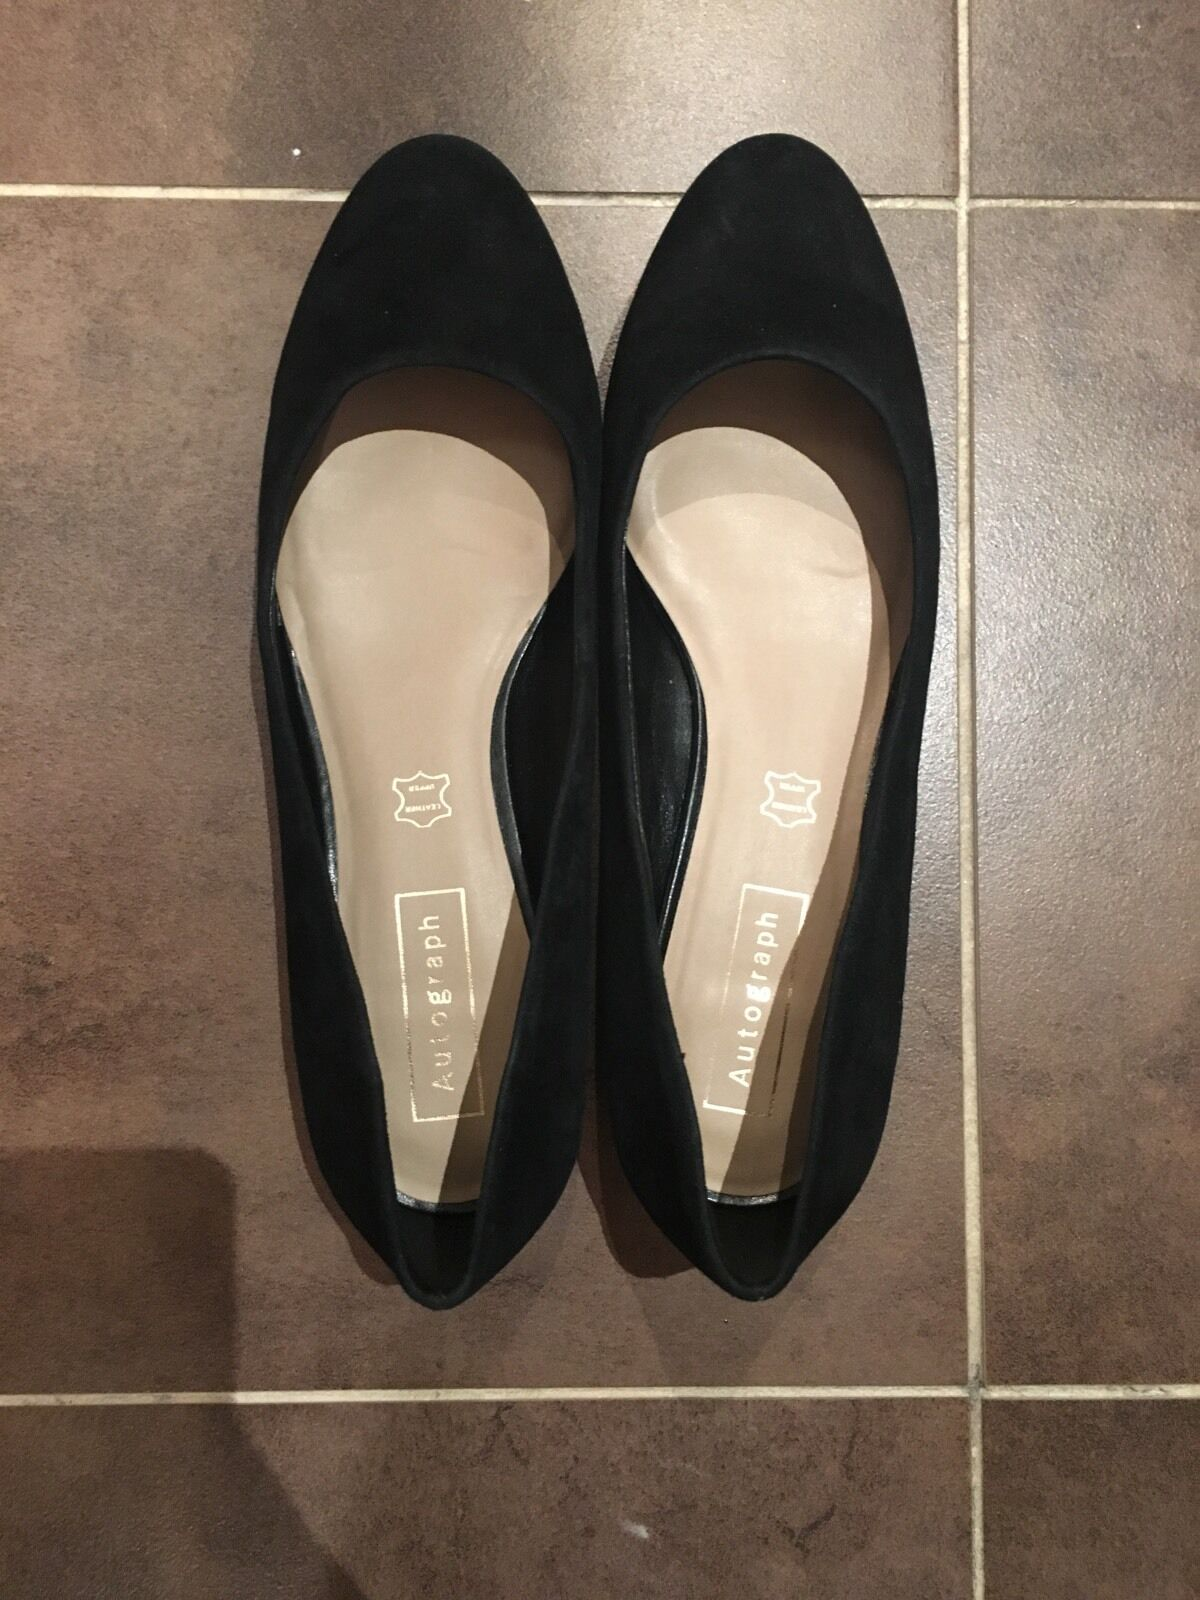 Marks And Spencer Autograph Low Heeled shoes Black Suede Size 5